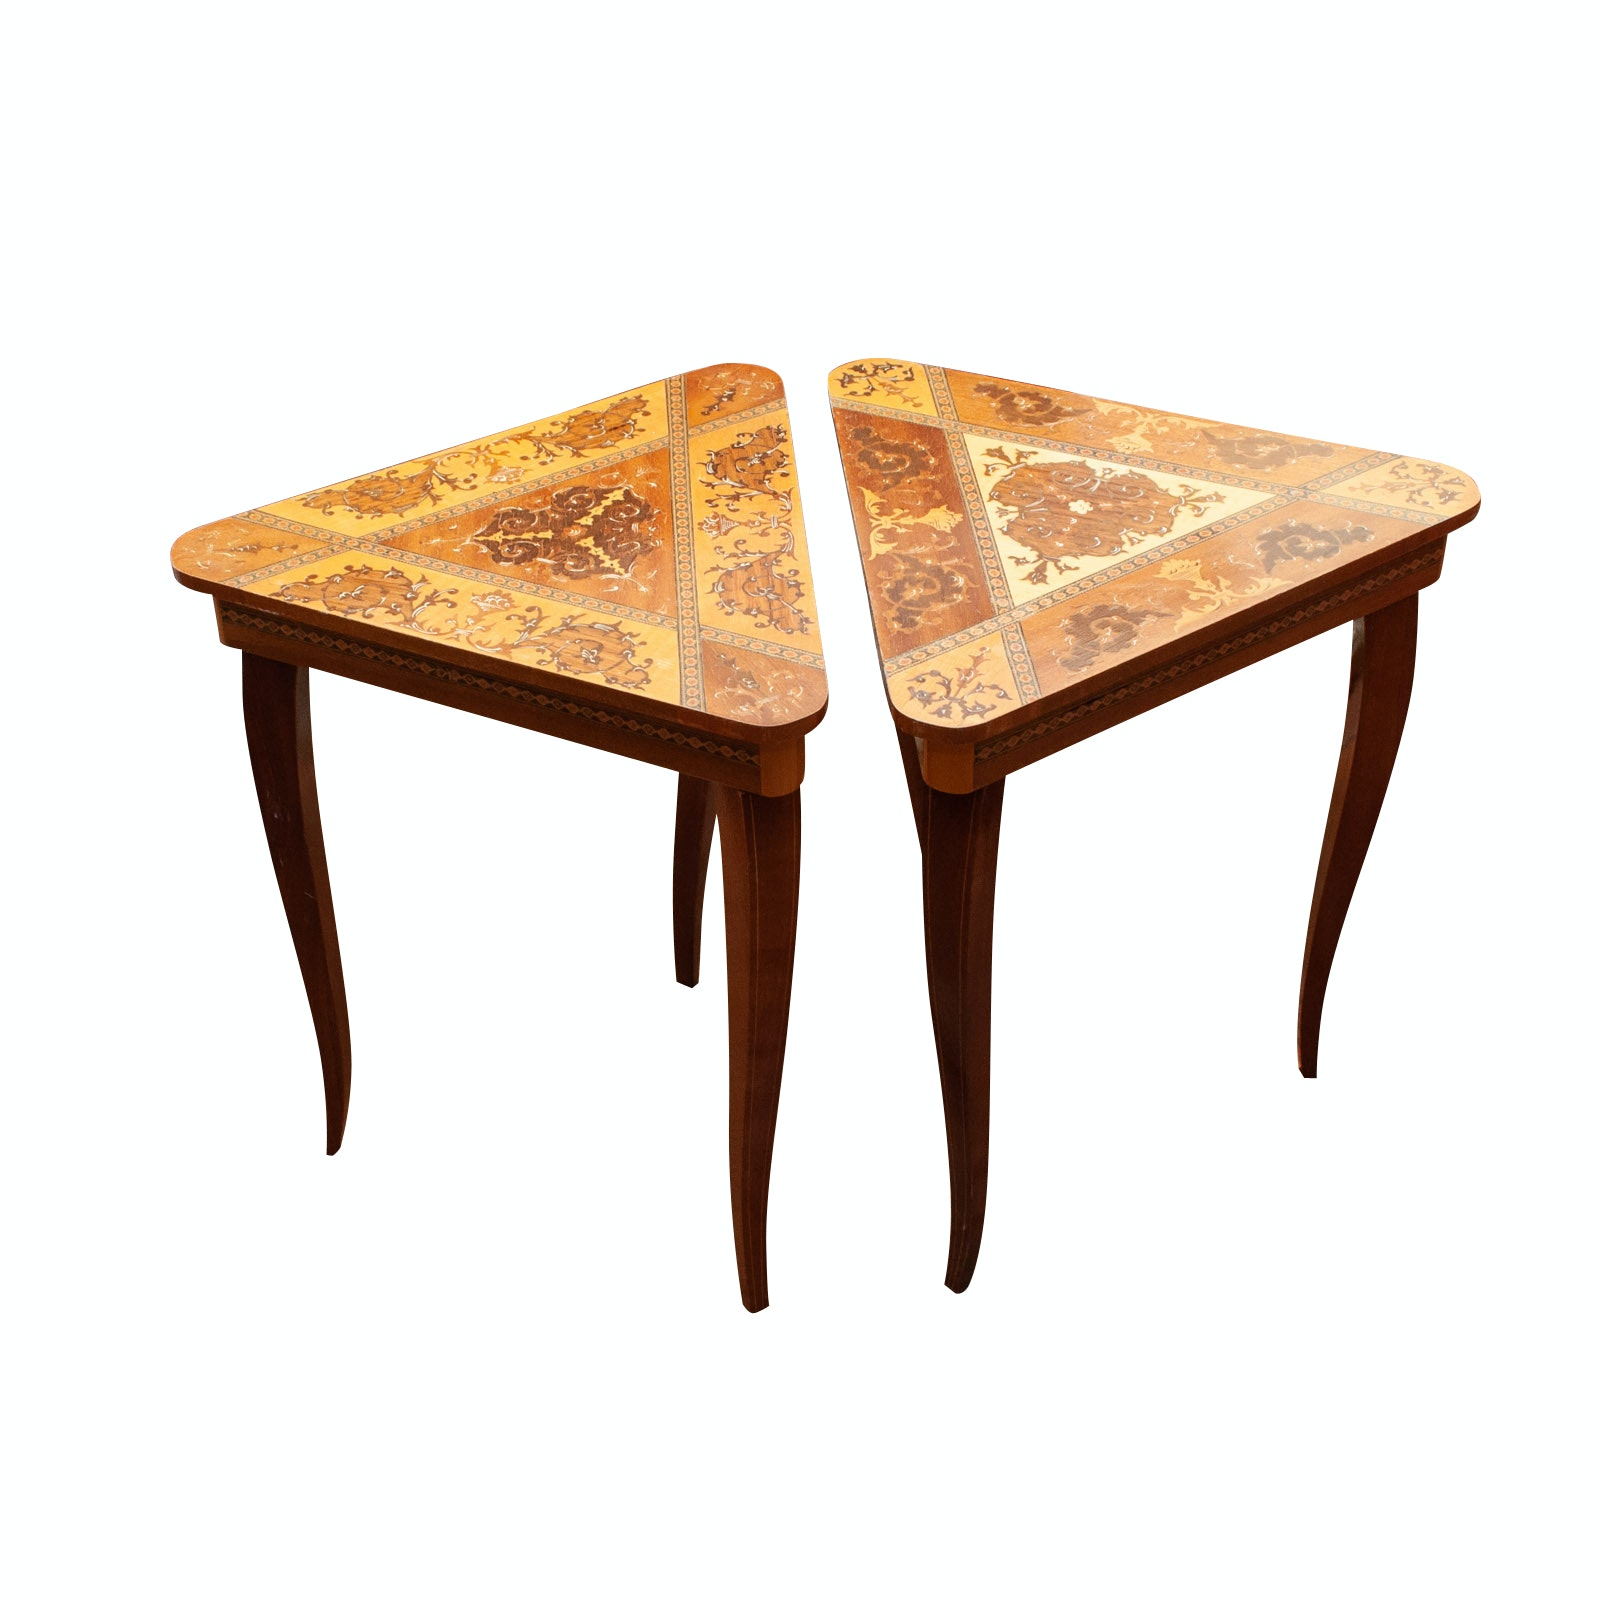 Pair of Vintage Italian Marquetry Music Box Tables